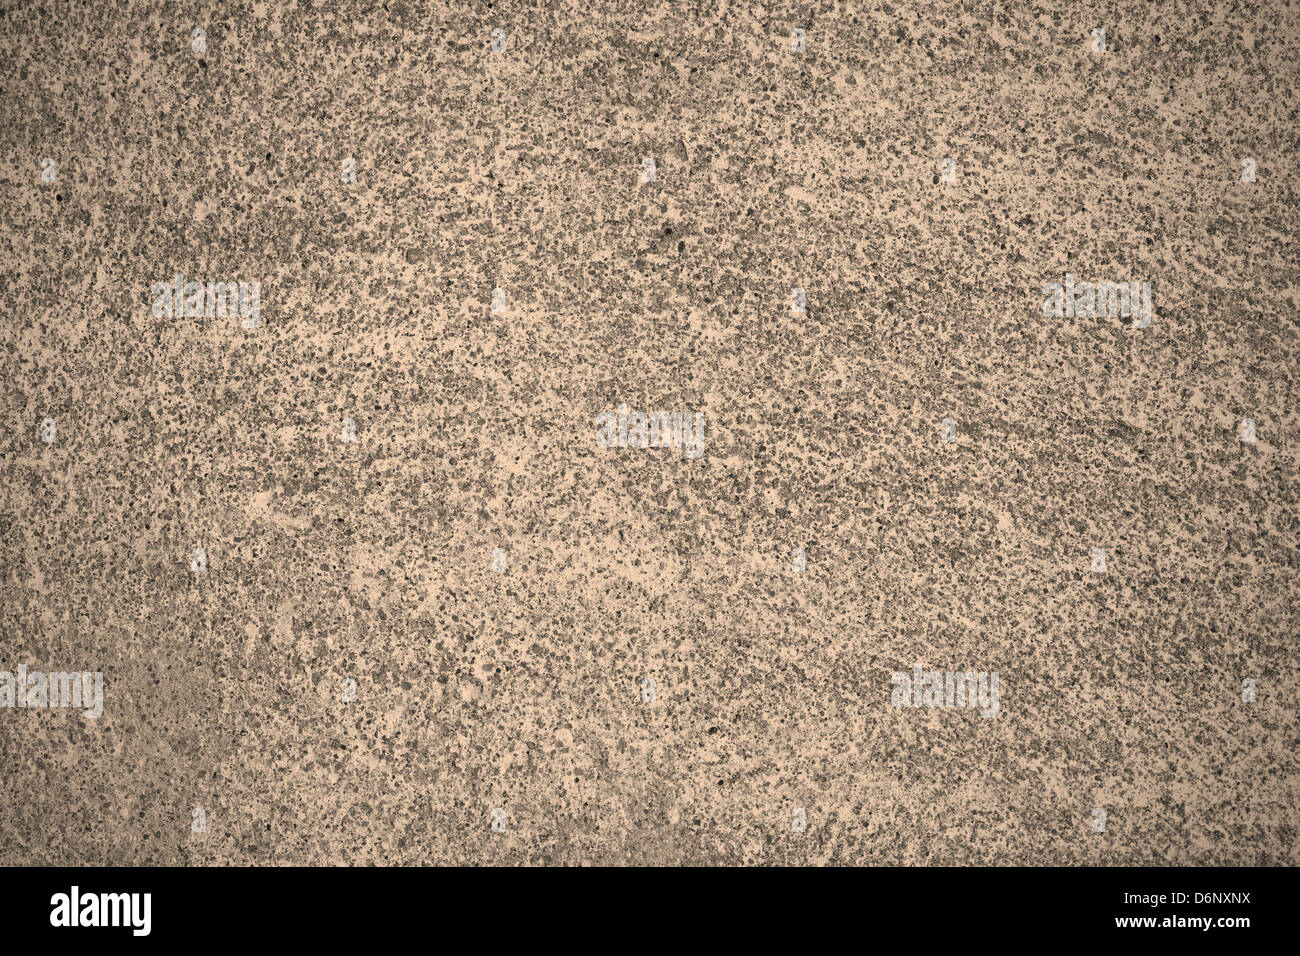 grainy stone background or rough pattern texture - Stock Image